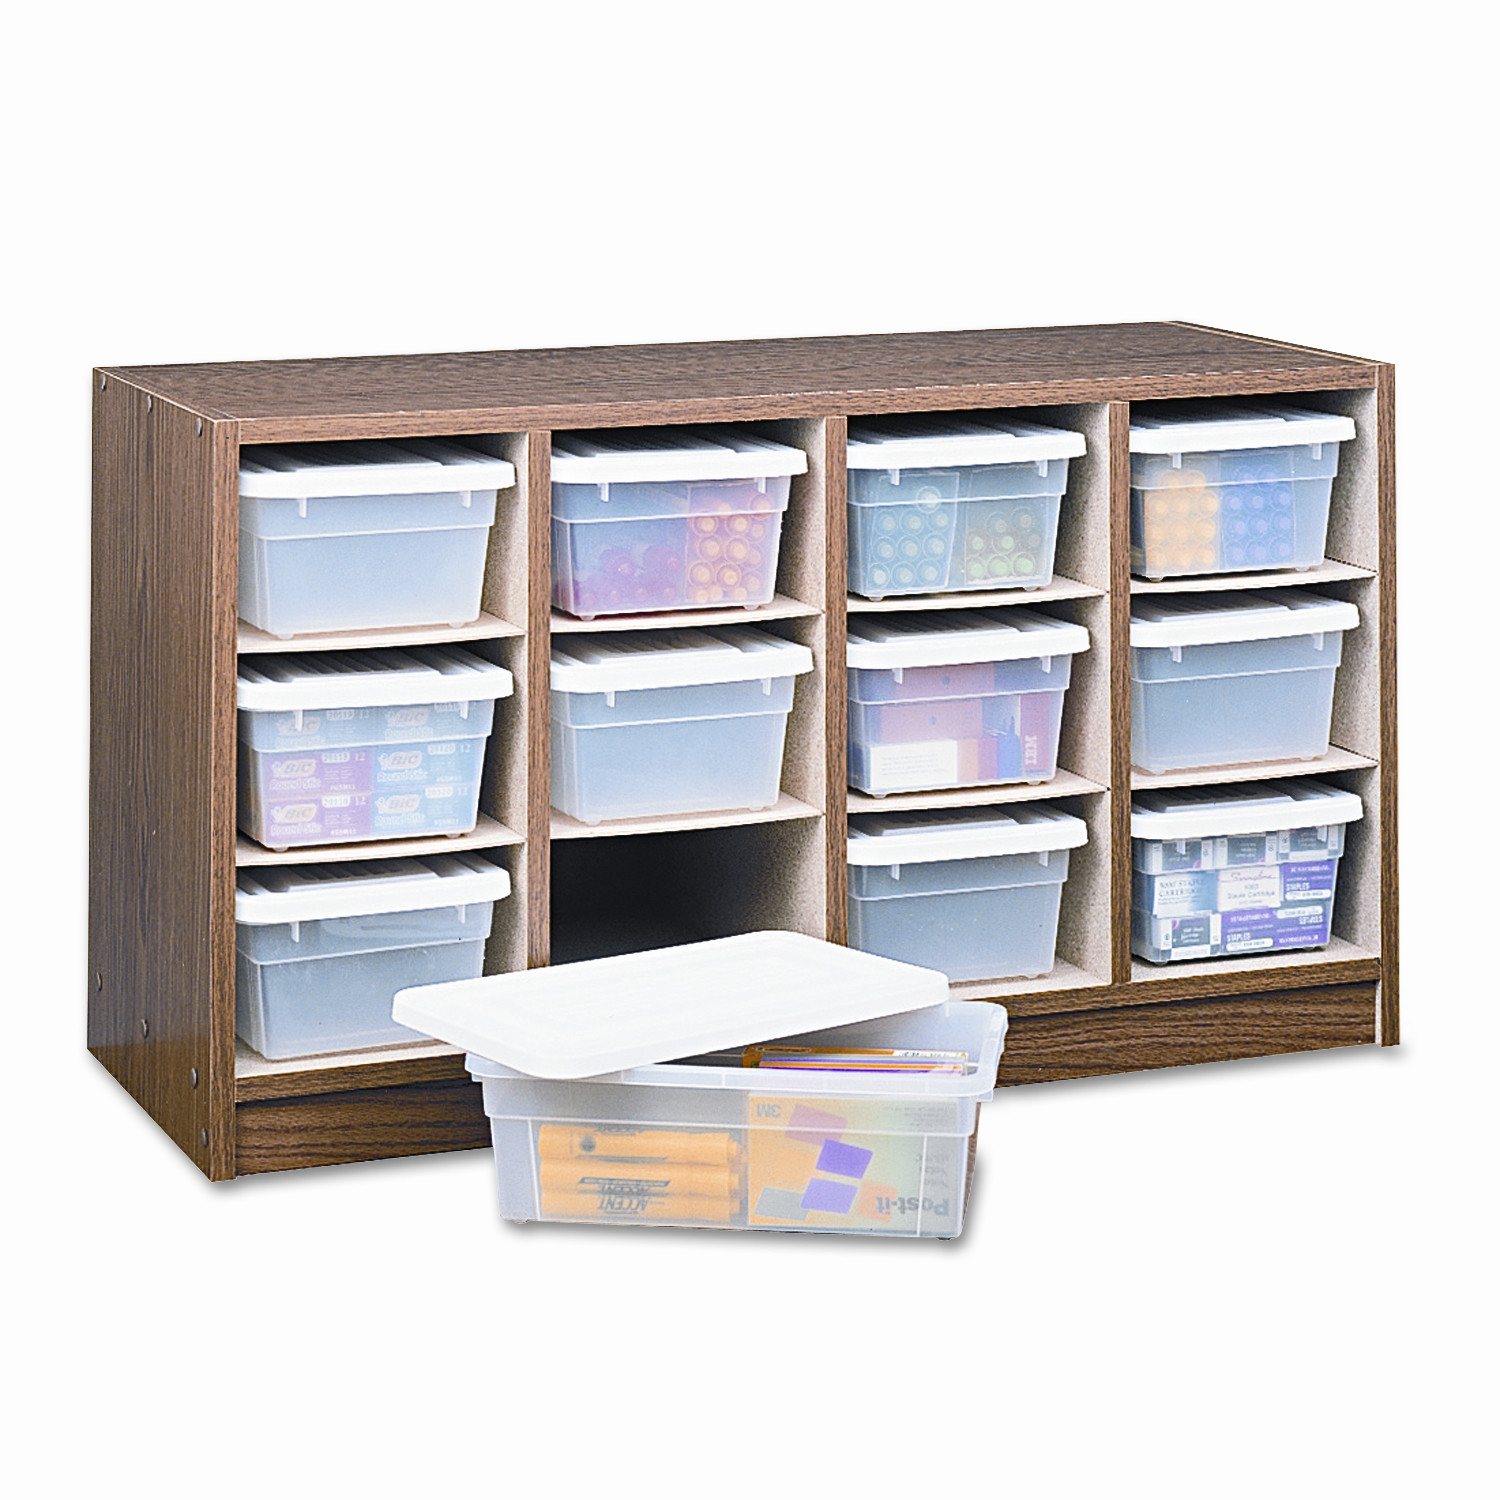 Safco | Safco Flat File 5 Drawer | Safco Bank